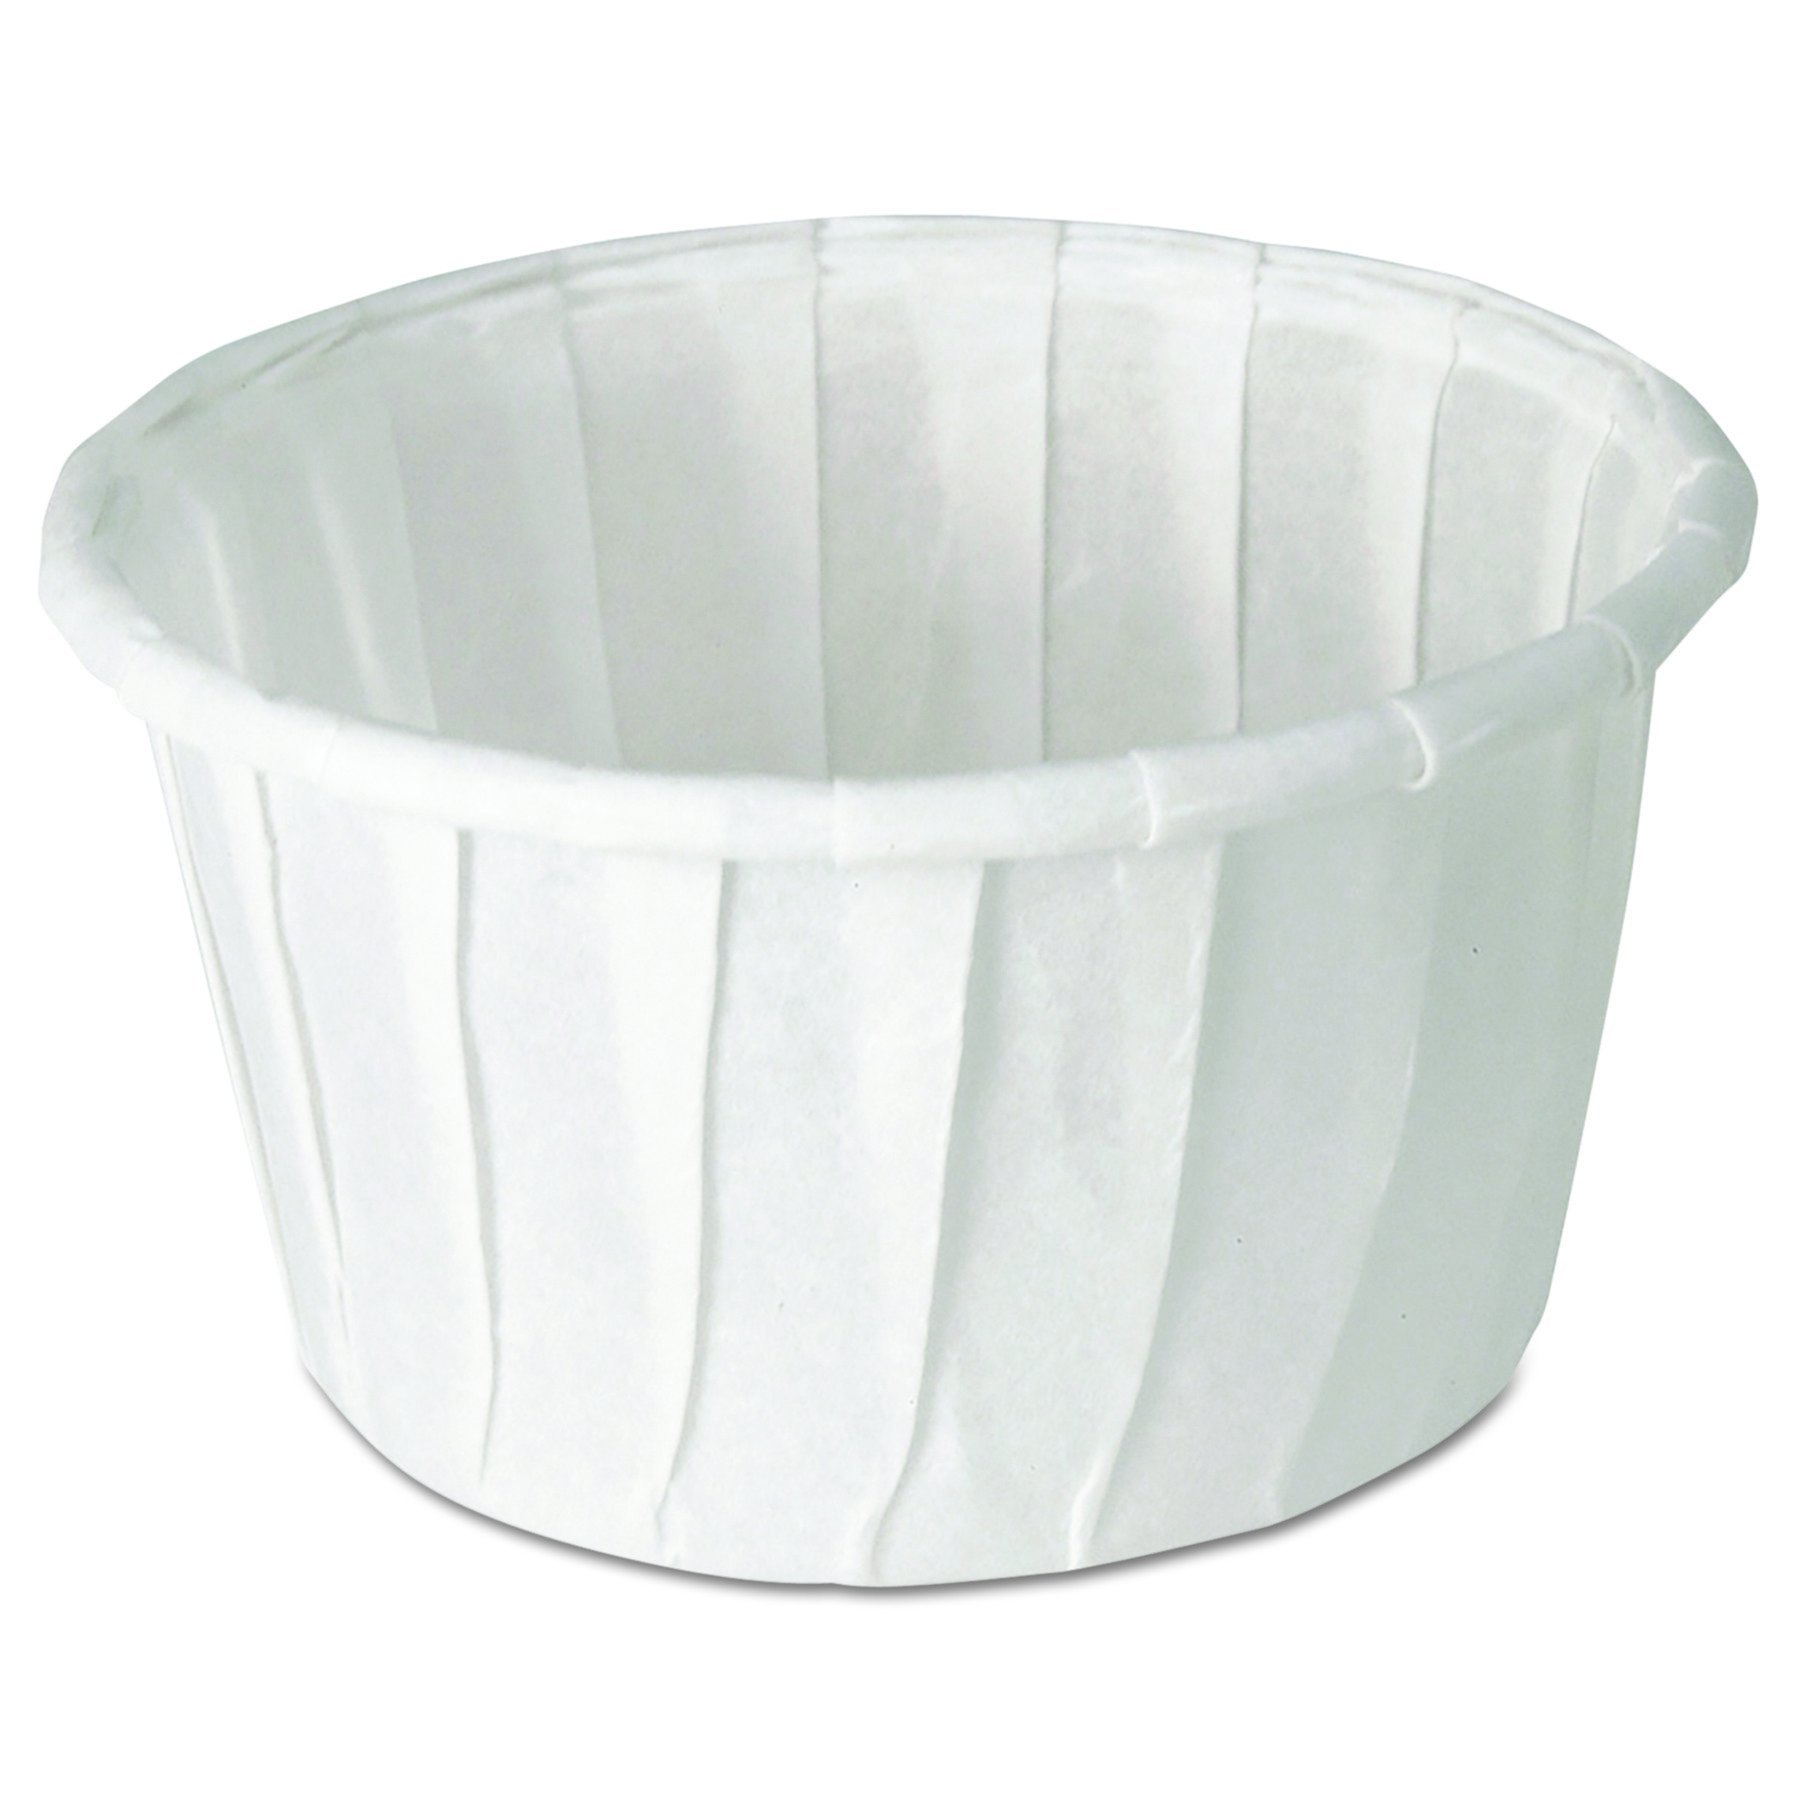 Solo 125-2050 1.25 oz Treated Paper Portion Cup (Case of 5000) by Solo Foodservice